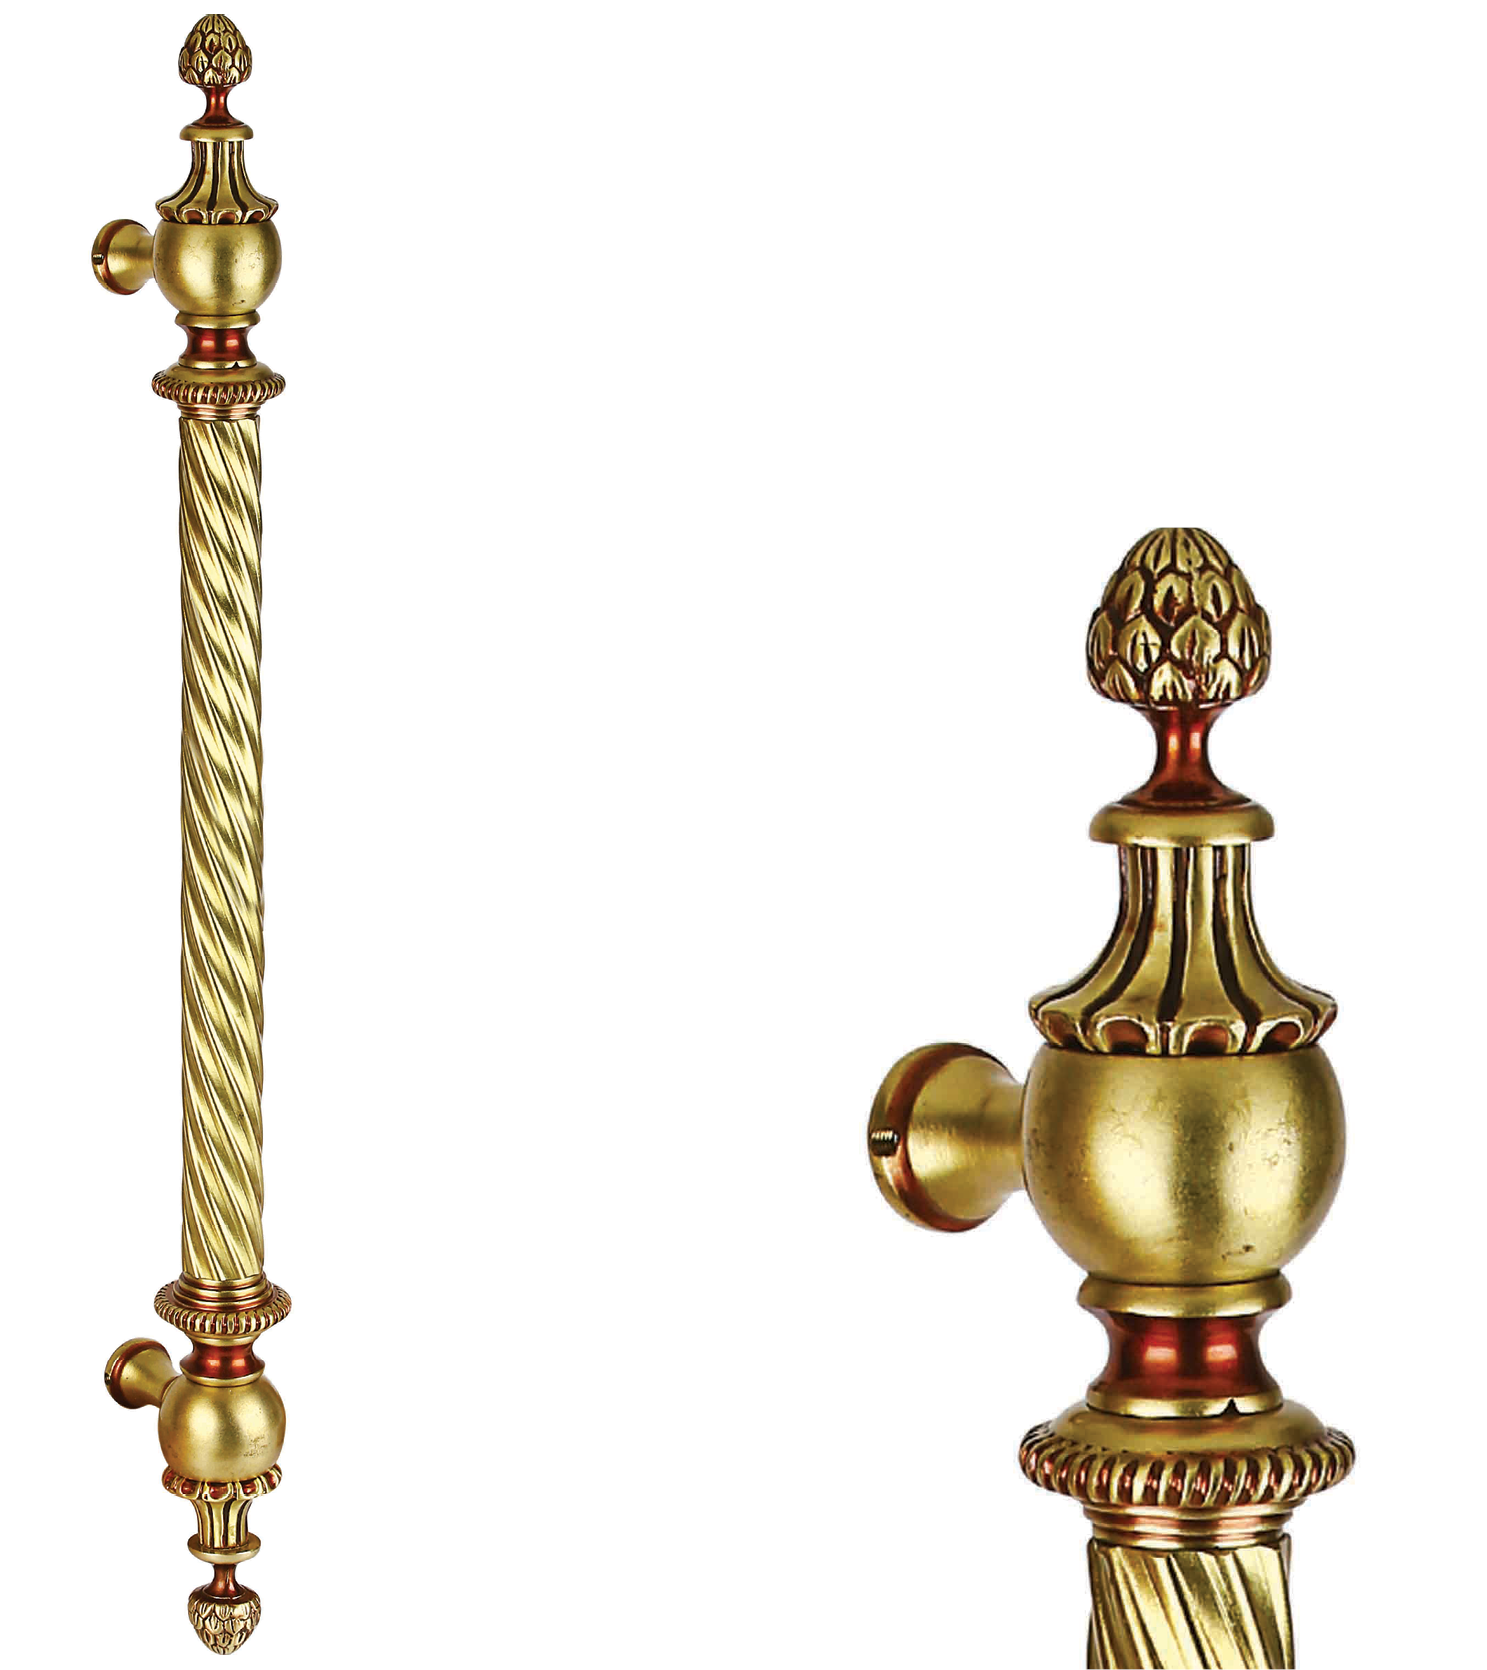 Indian main door pull handle and locks for glass and wooden doors  for apartments